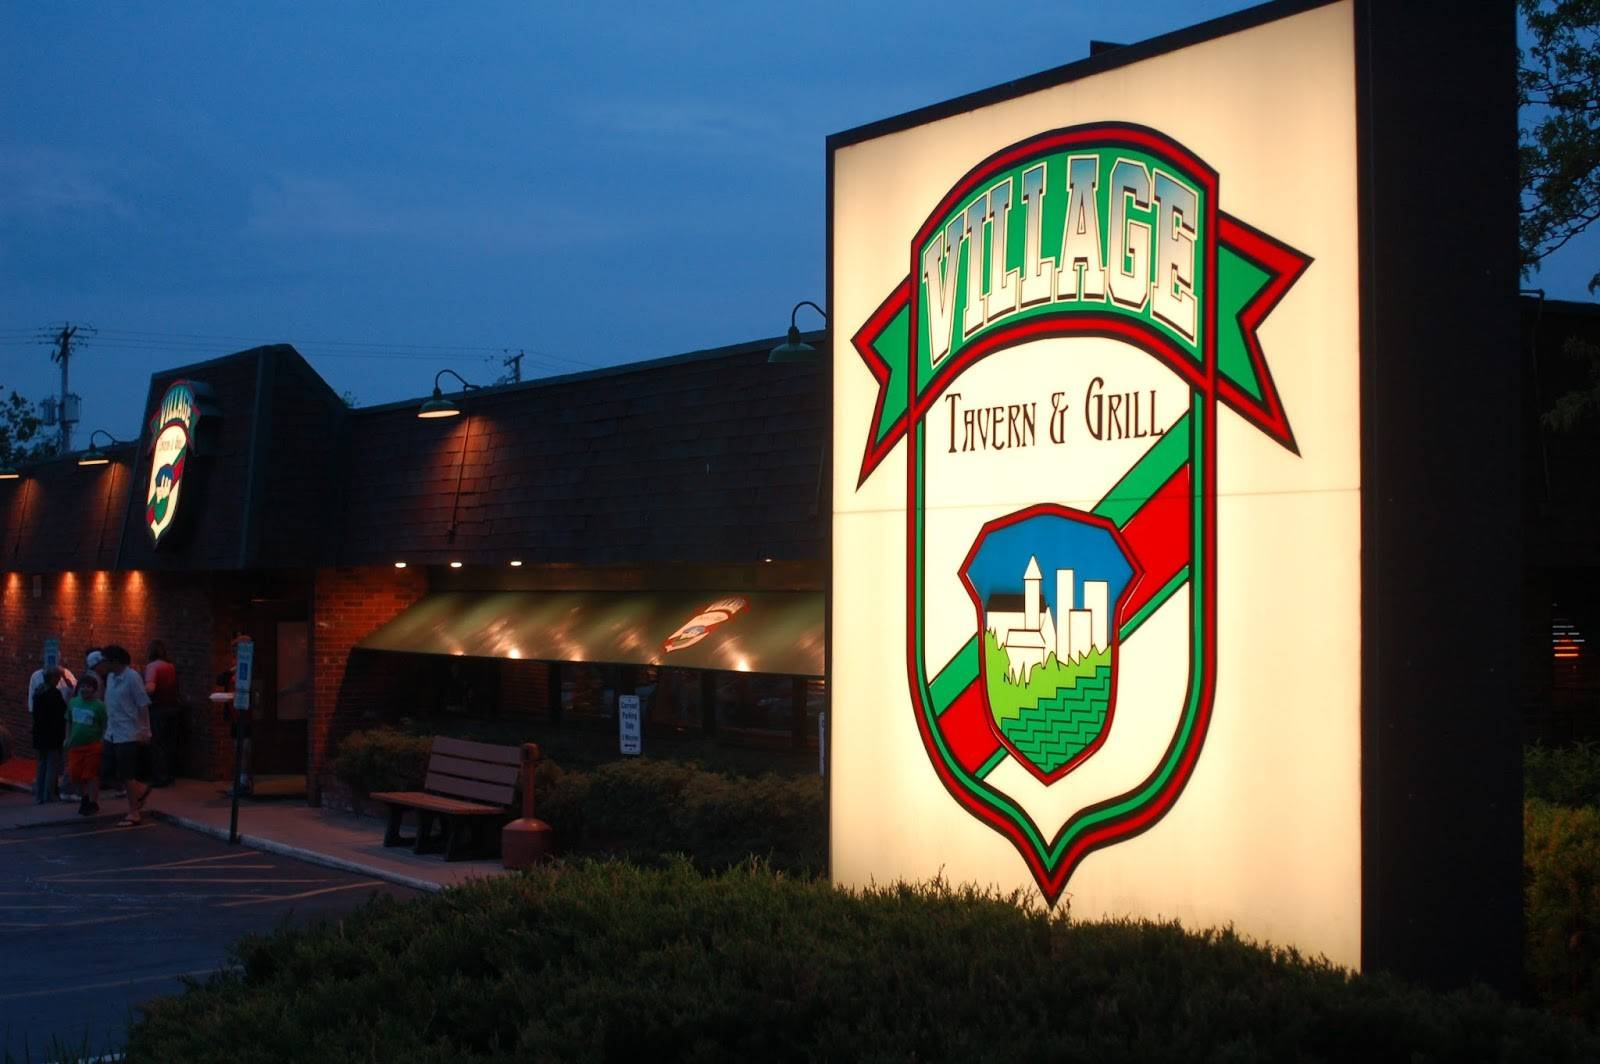 The Village Tavern & Grill in Schaumburg.